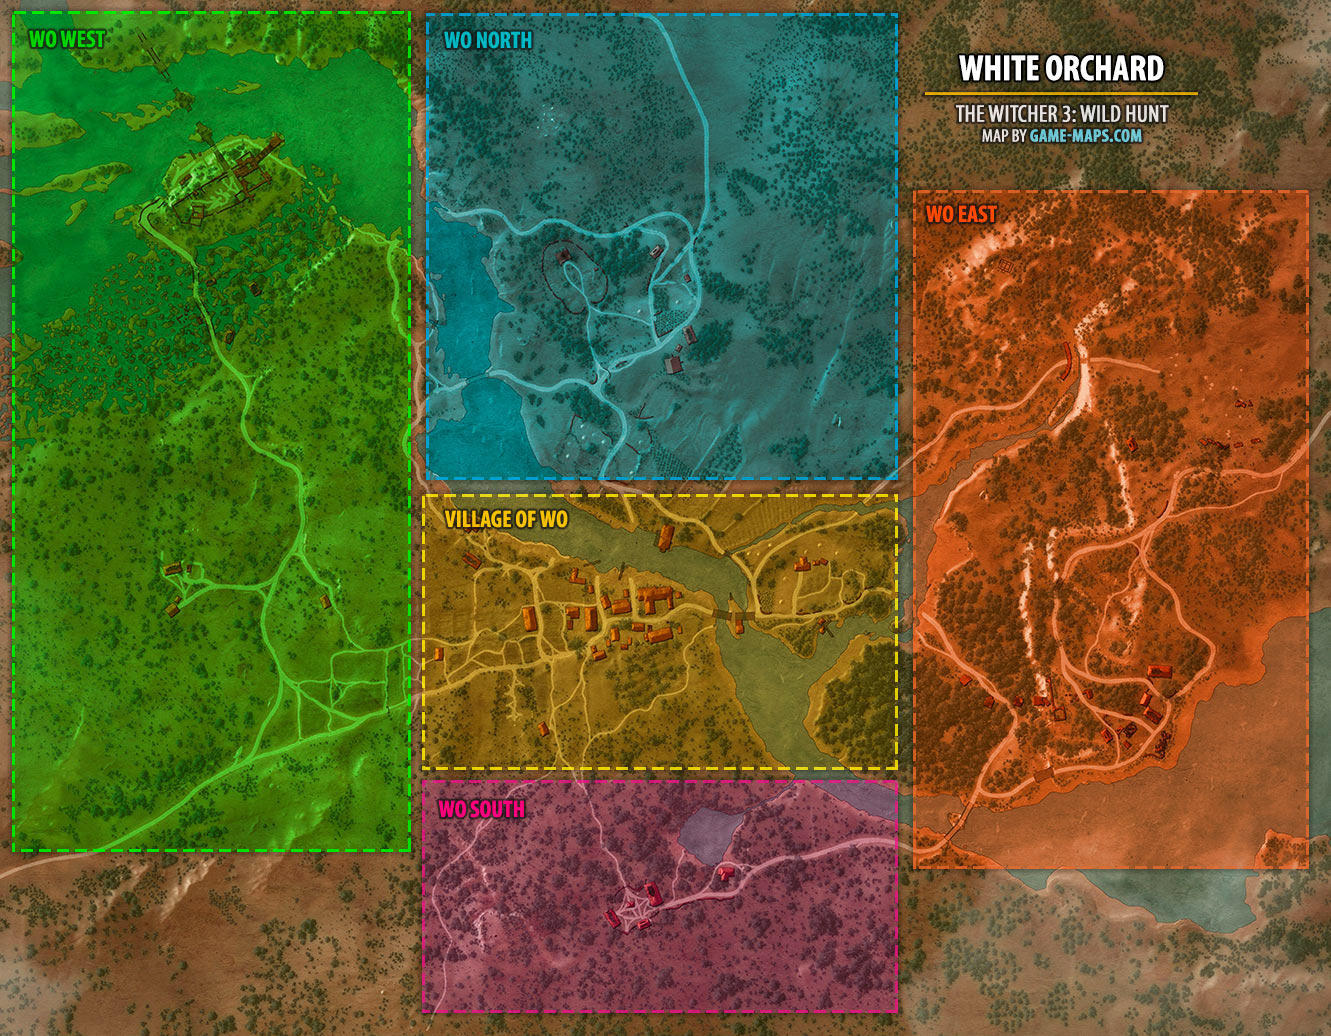 the witcher world map with Map White Orchard Prev on Map White Orchard Prev furthermore Dragon Age Inquisition together with 6358634887 moreover Guide together with The Witcher 1 Vs The Witcher 2 Vs The Witcher 3 Geralts Merigolds Zoltans Visual Evolution.